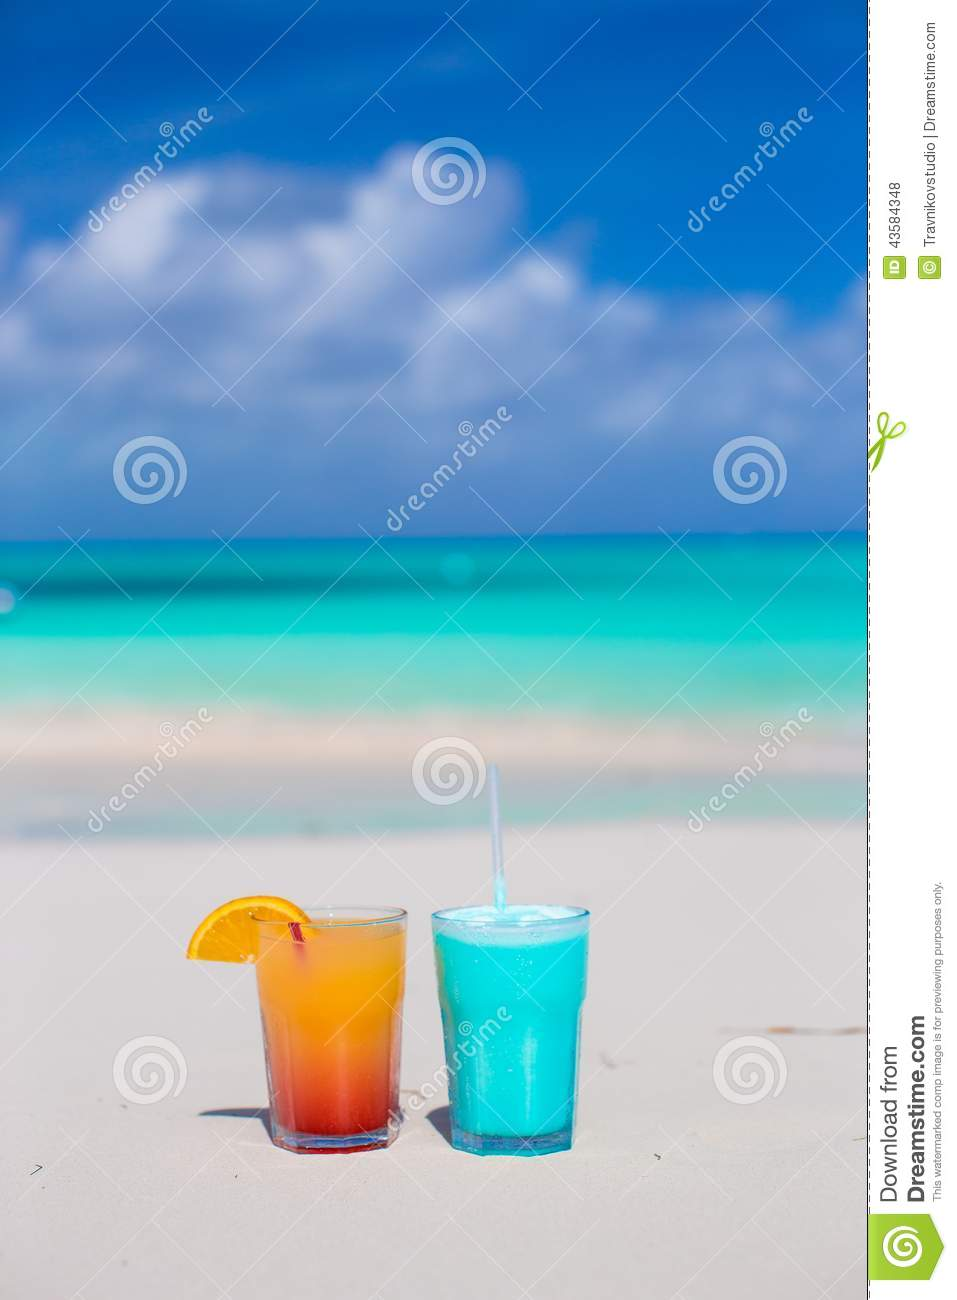 Blue Curacao Cocktail Alkoholfrei Two Tasty Cocktails On The White Sandy Beach Stock Photo Image